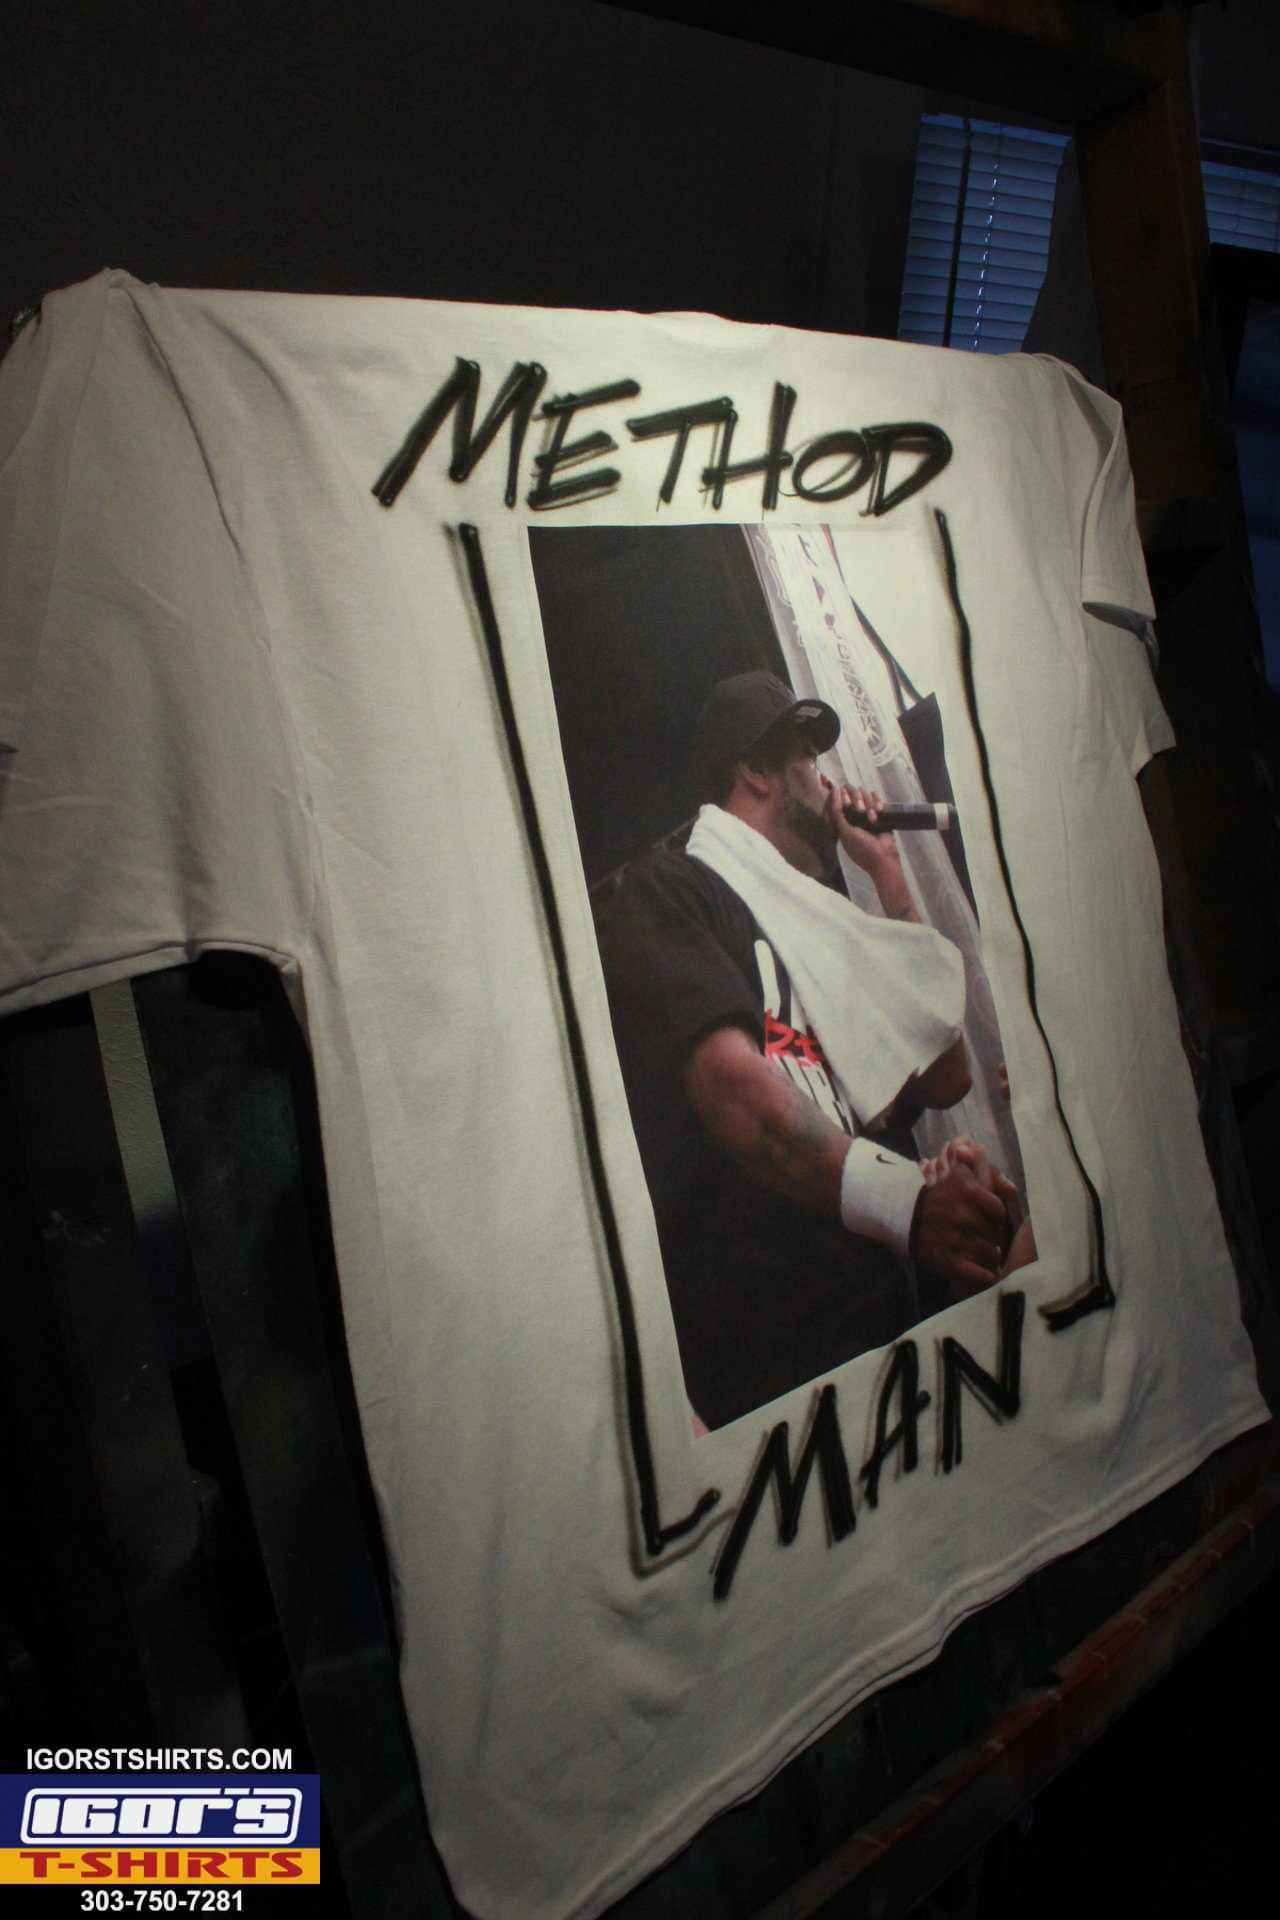 method man t shirt photo on heat transfer with airbrush